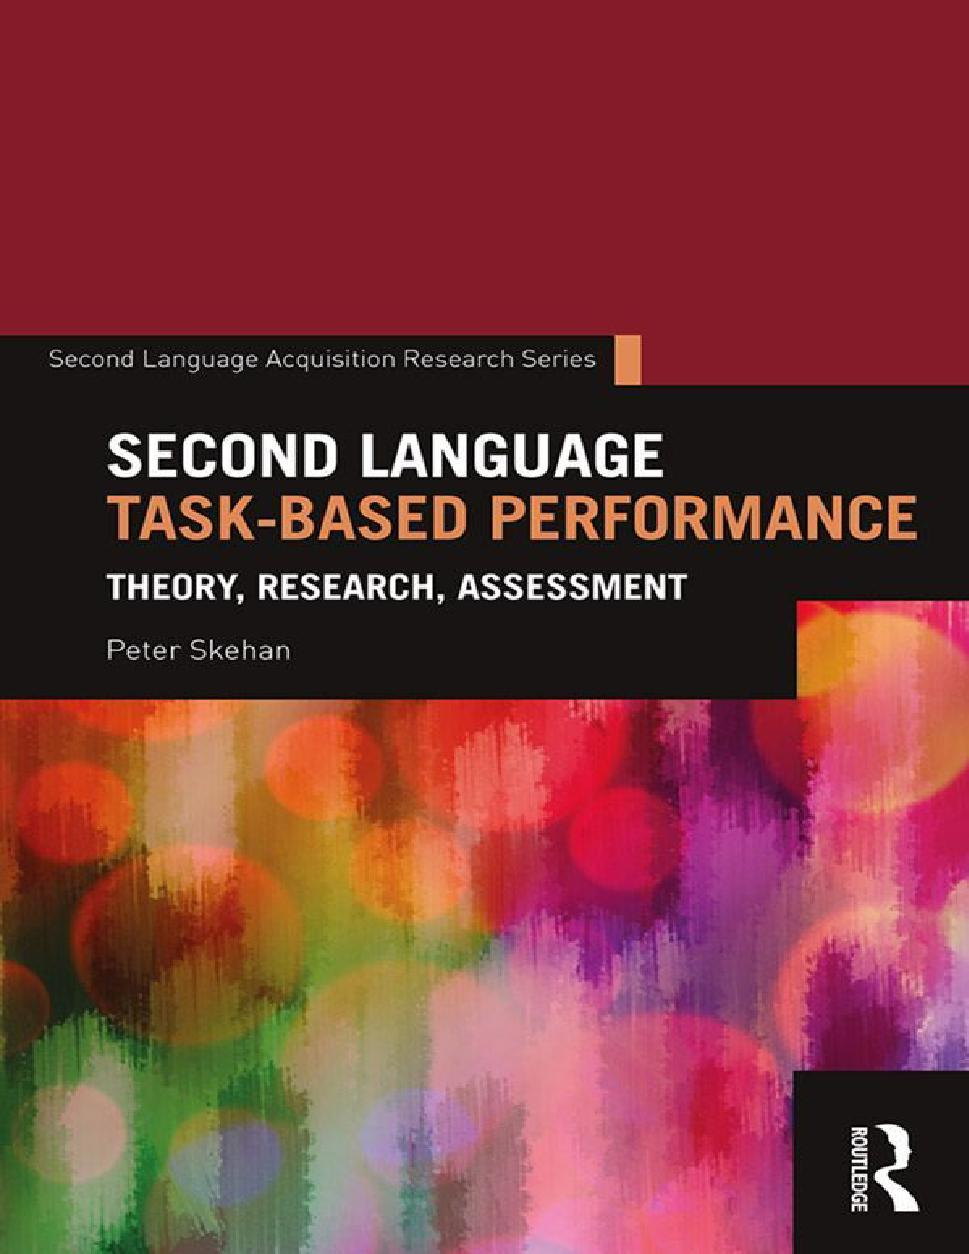 Second Language Task-Based Performance: Theory, Research, Assessment